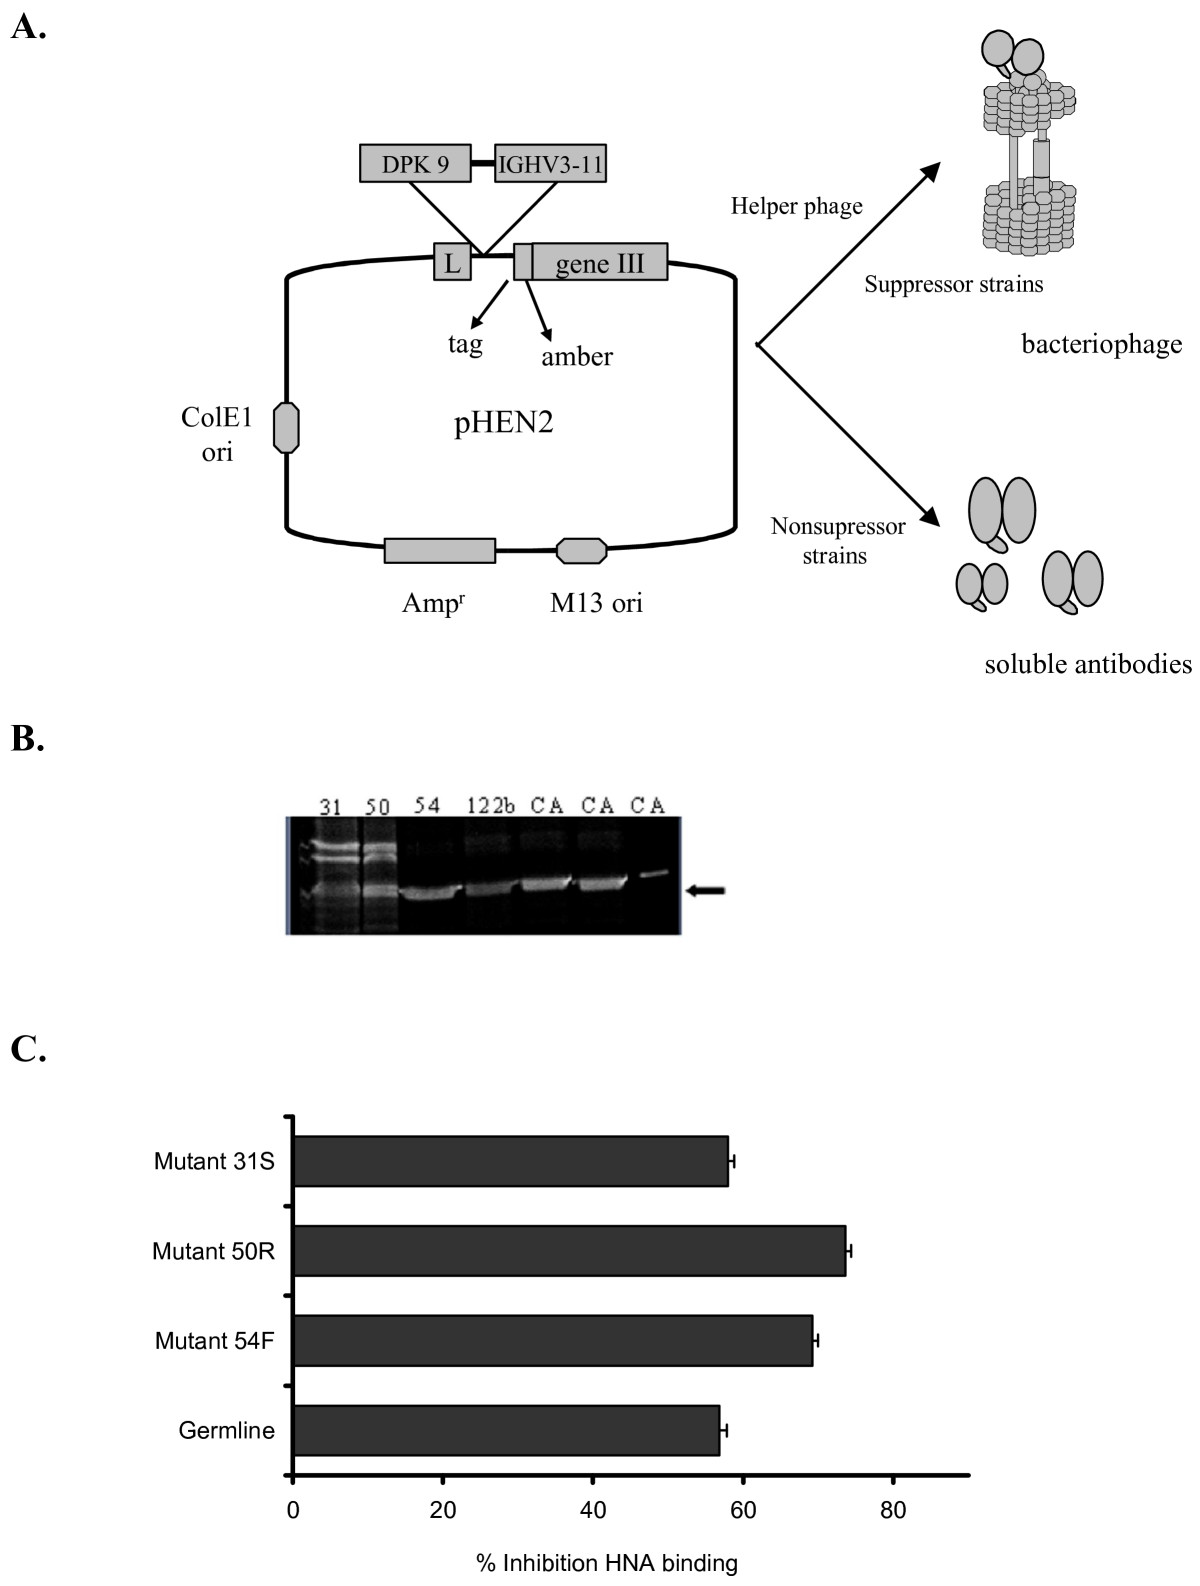 https://static-content.springer.com/image/art%3A10.1186%2F1471-2172-8-3/MediaObjects/12865_2006_Article_117_Fig6_HTML.jpg